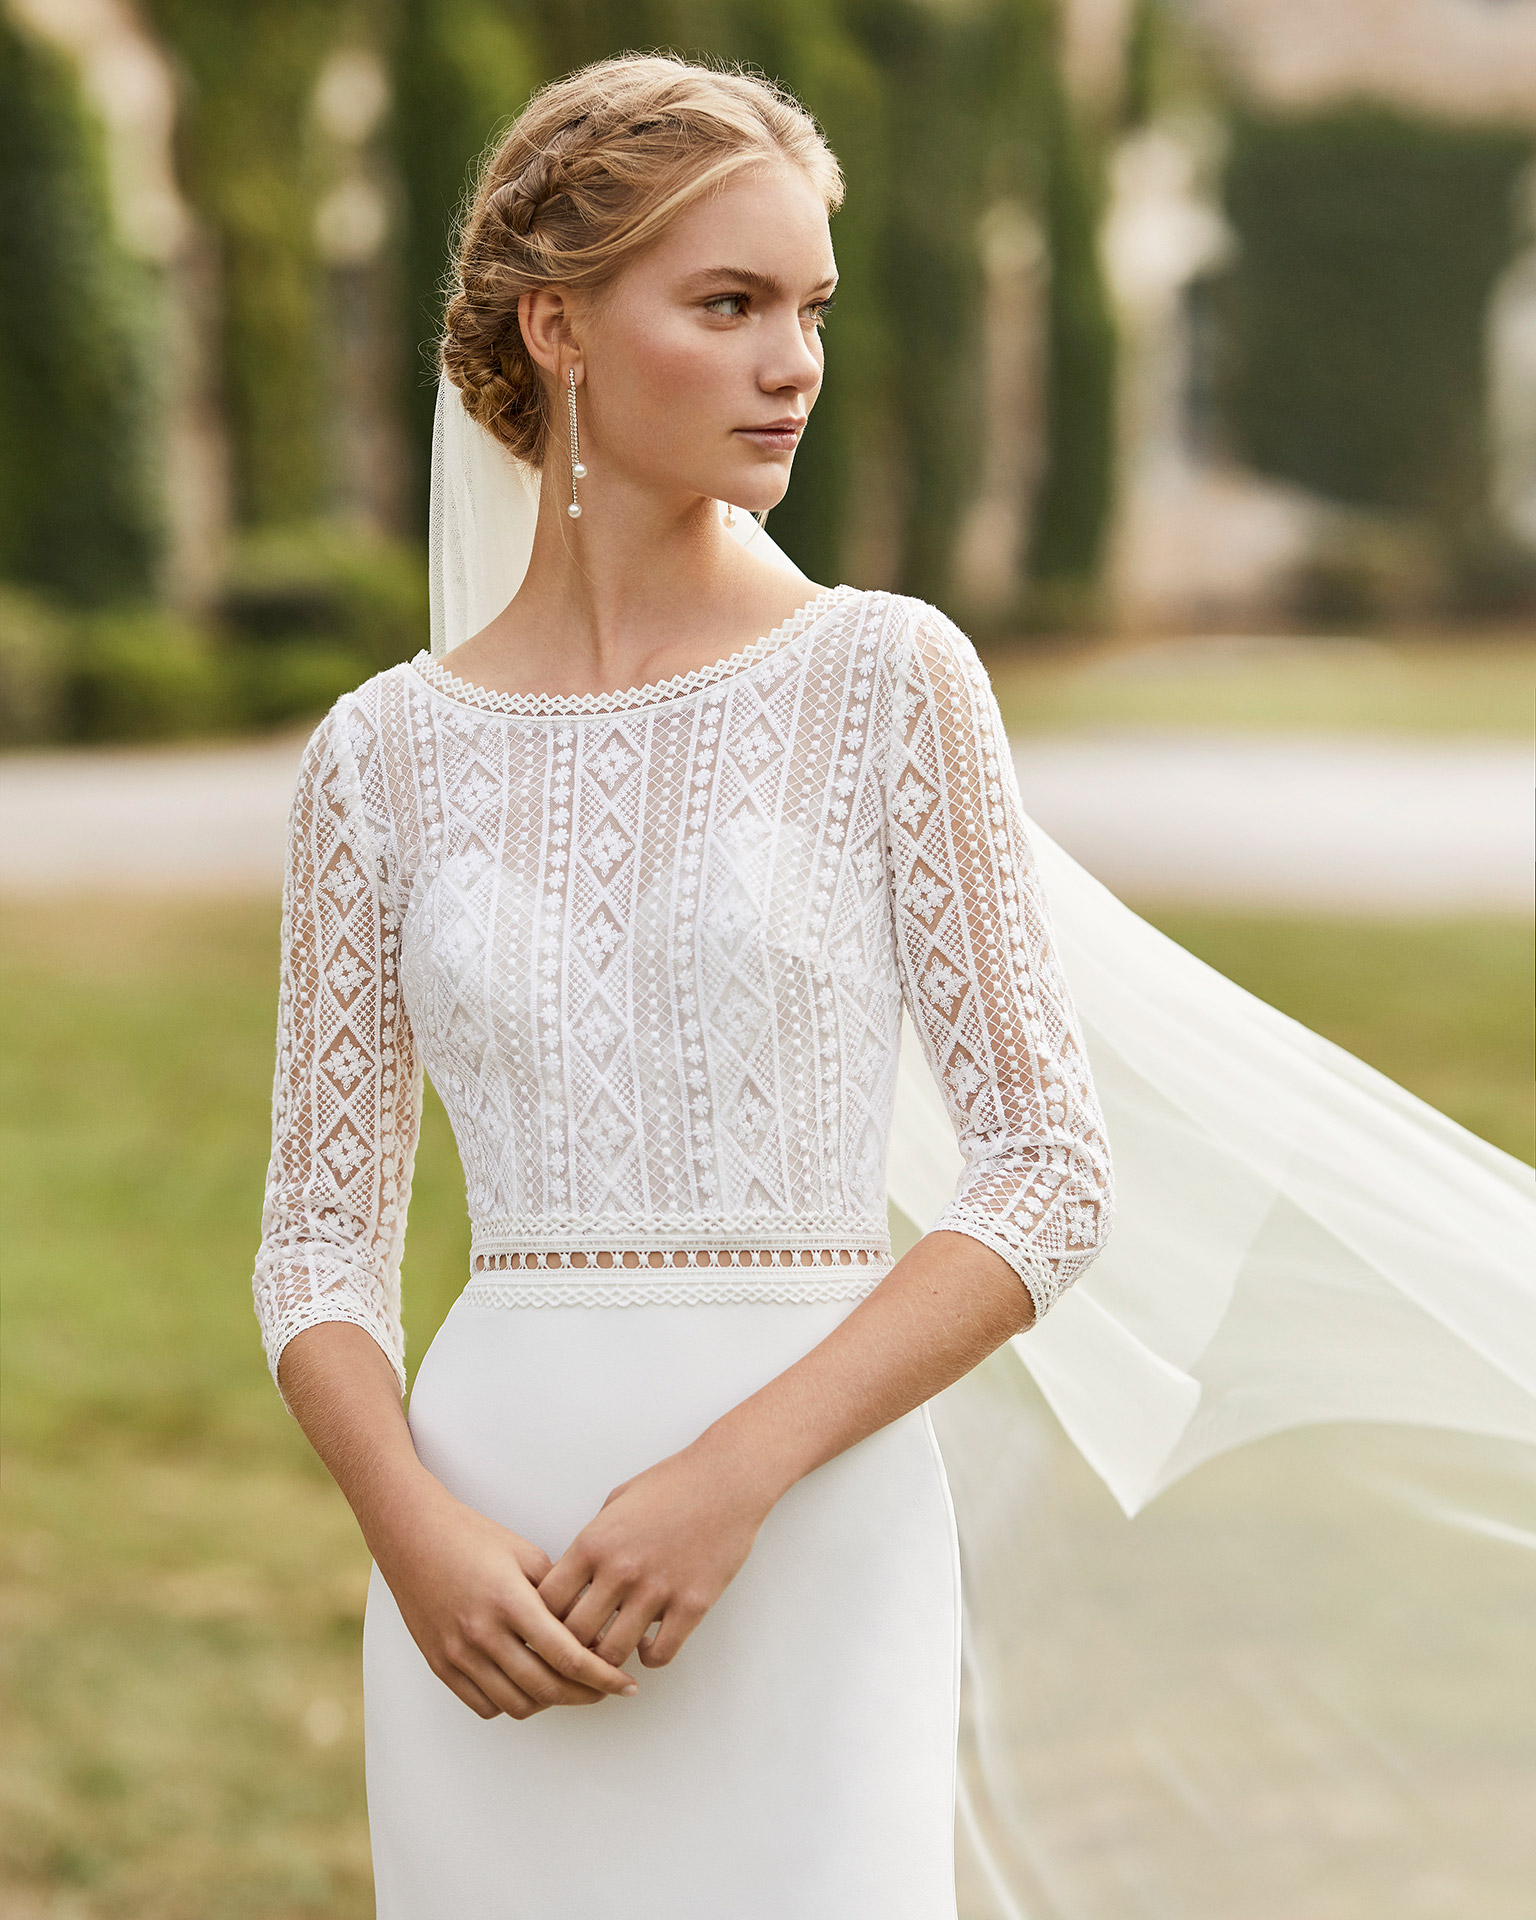 Wedding dress in crepe. Bateau neckline lace, three-quarter sleeves in lace, lace belt and V-back in lace. 2021 ALMANOVIA Collection.